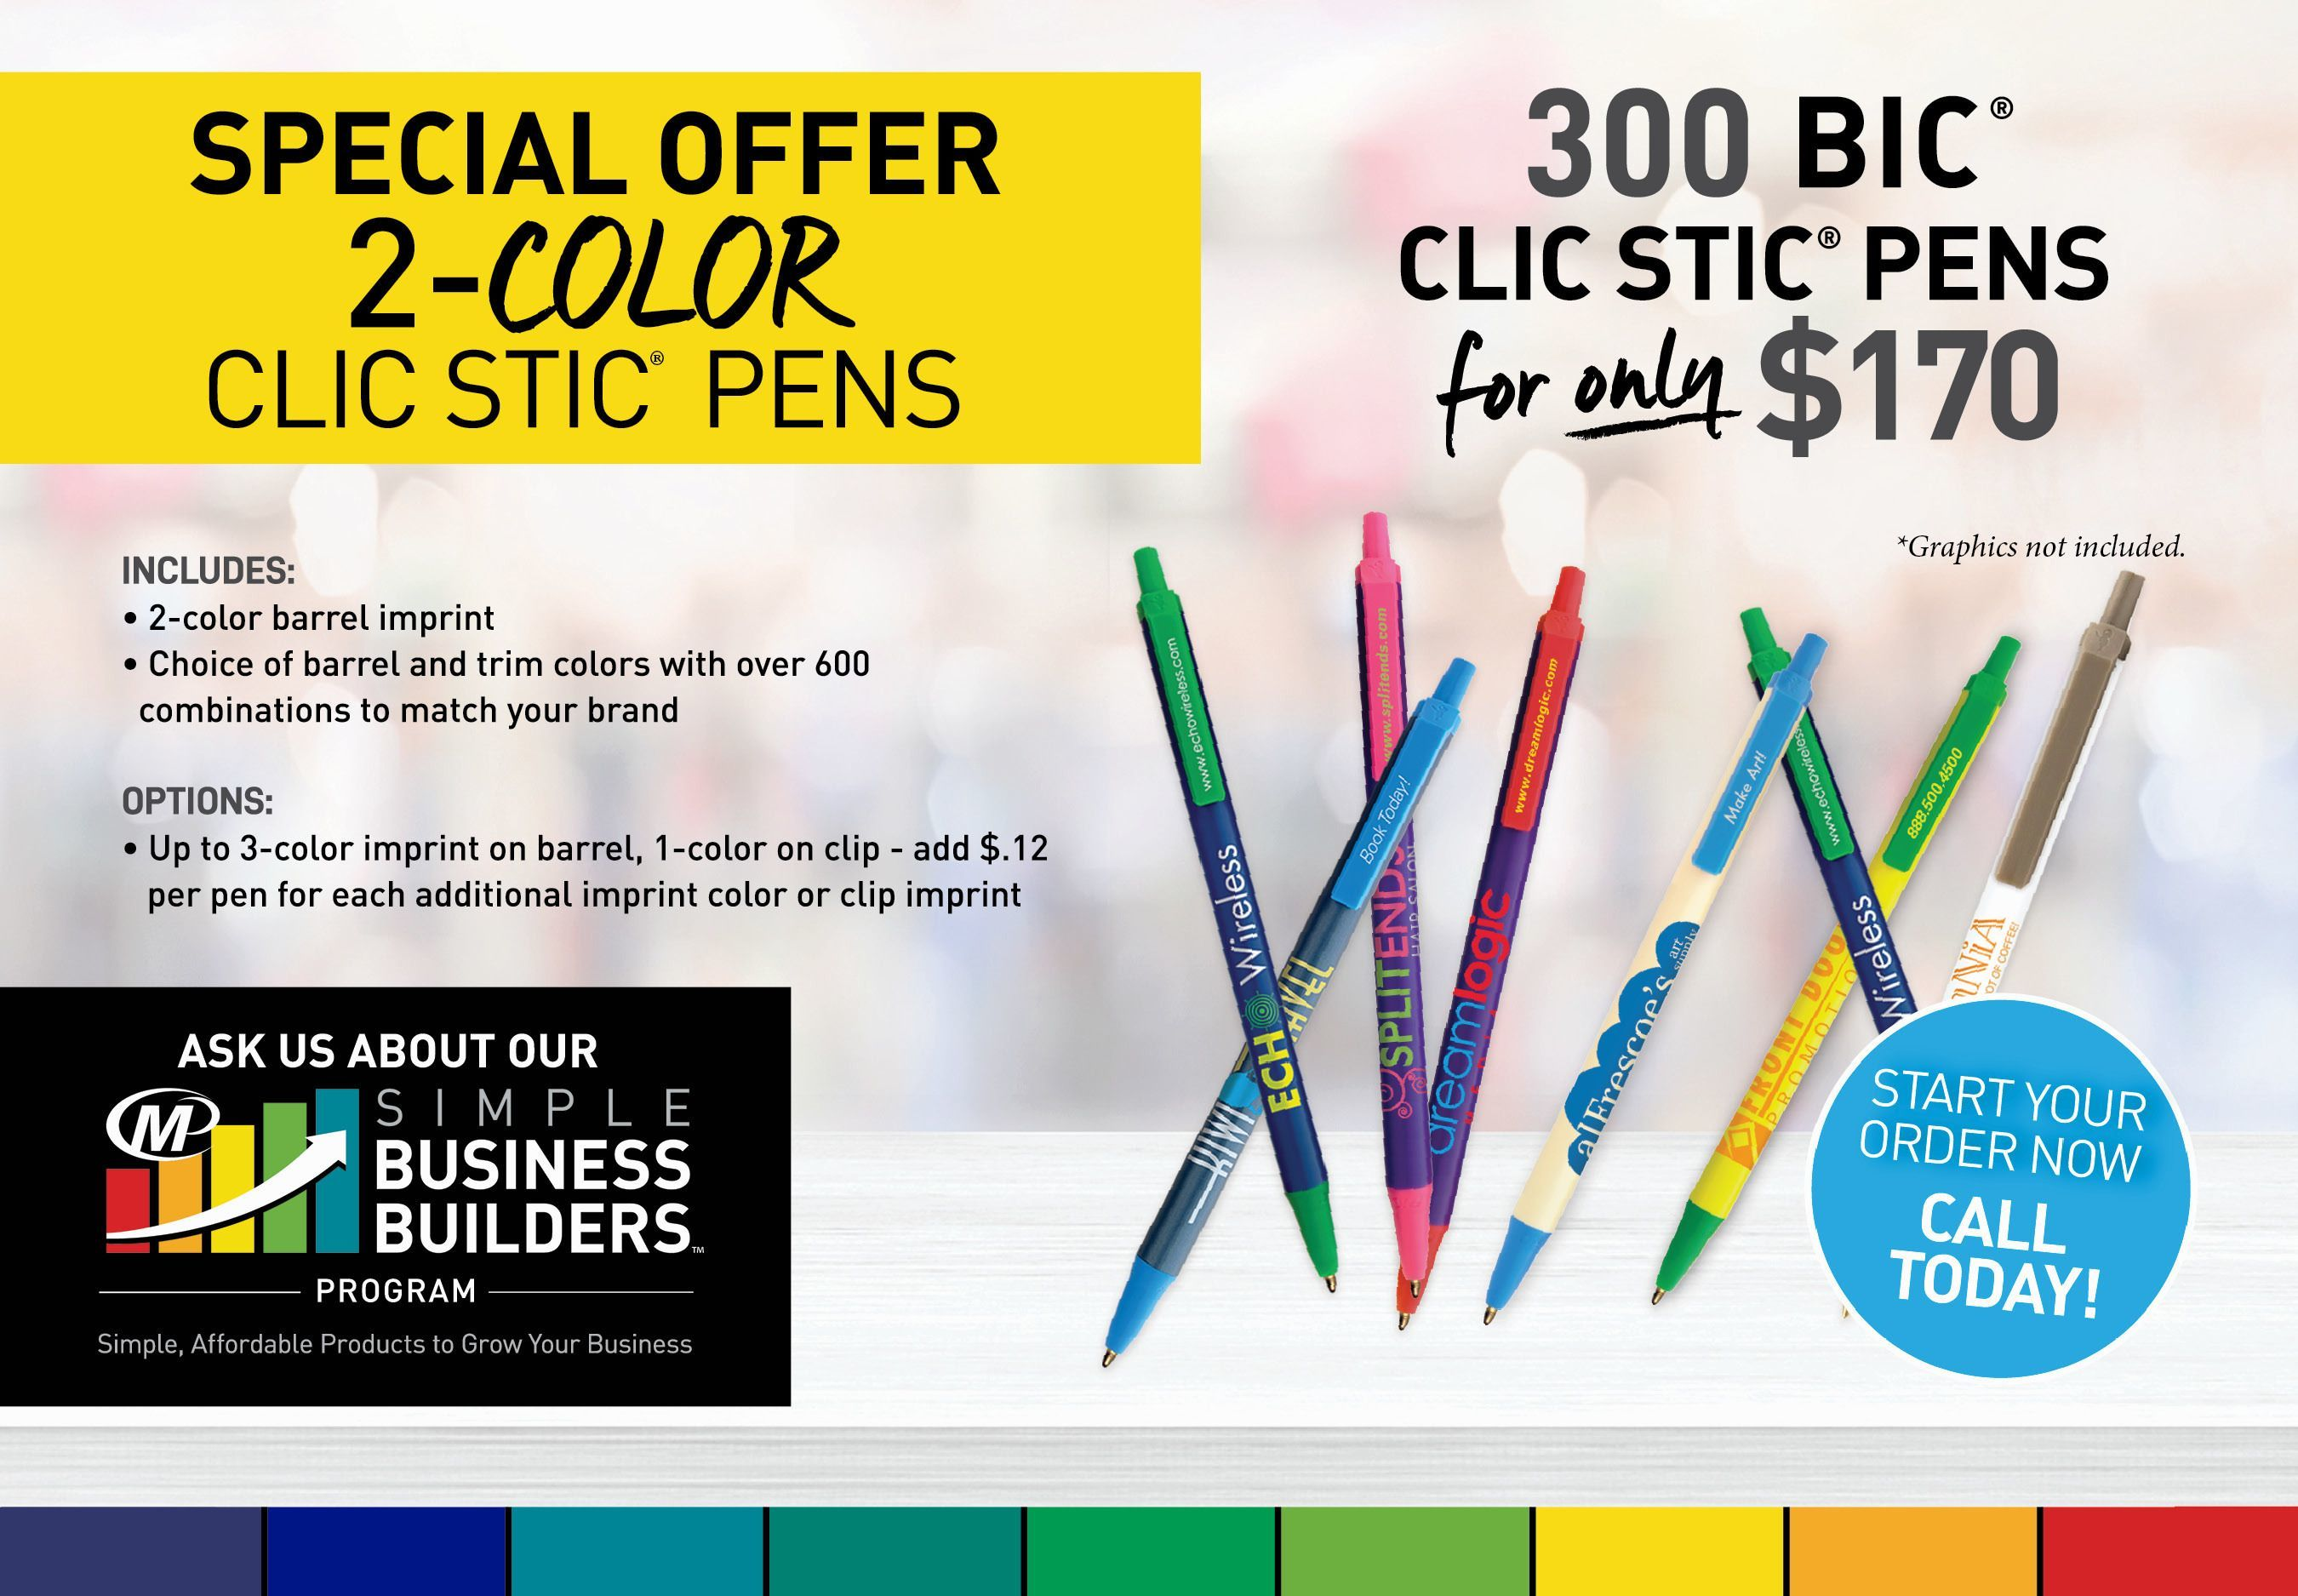 Special Offer on Pens